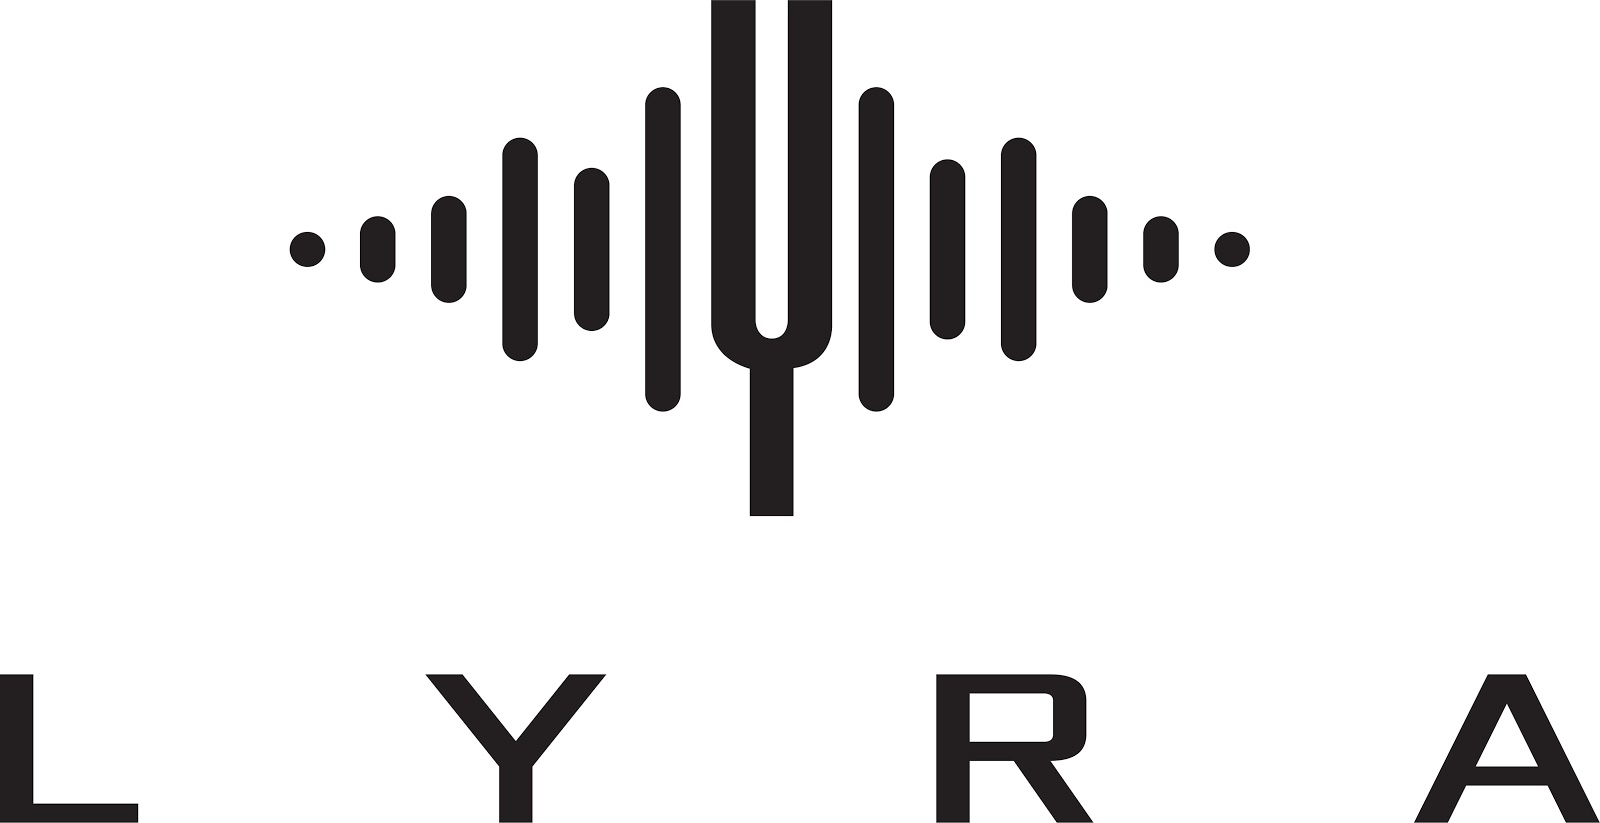 Google open-sources Lyra codec for high-quality voice calls with very low bandwidth - SiliconANGLE